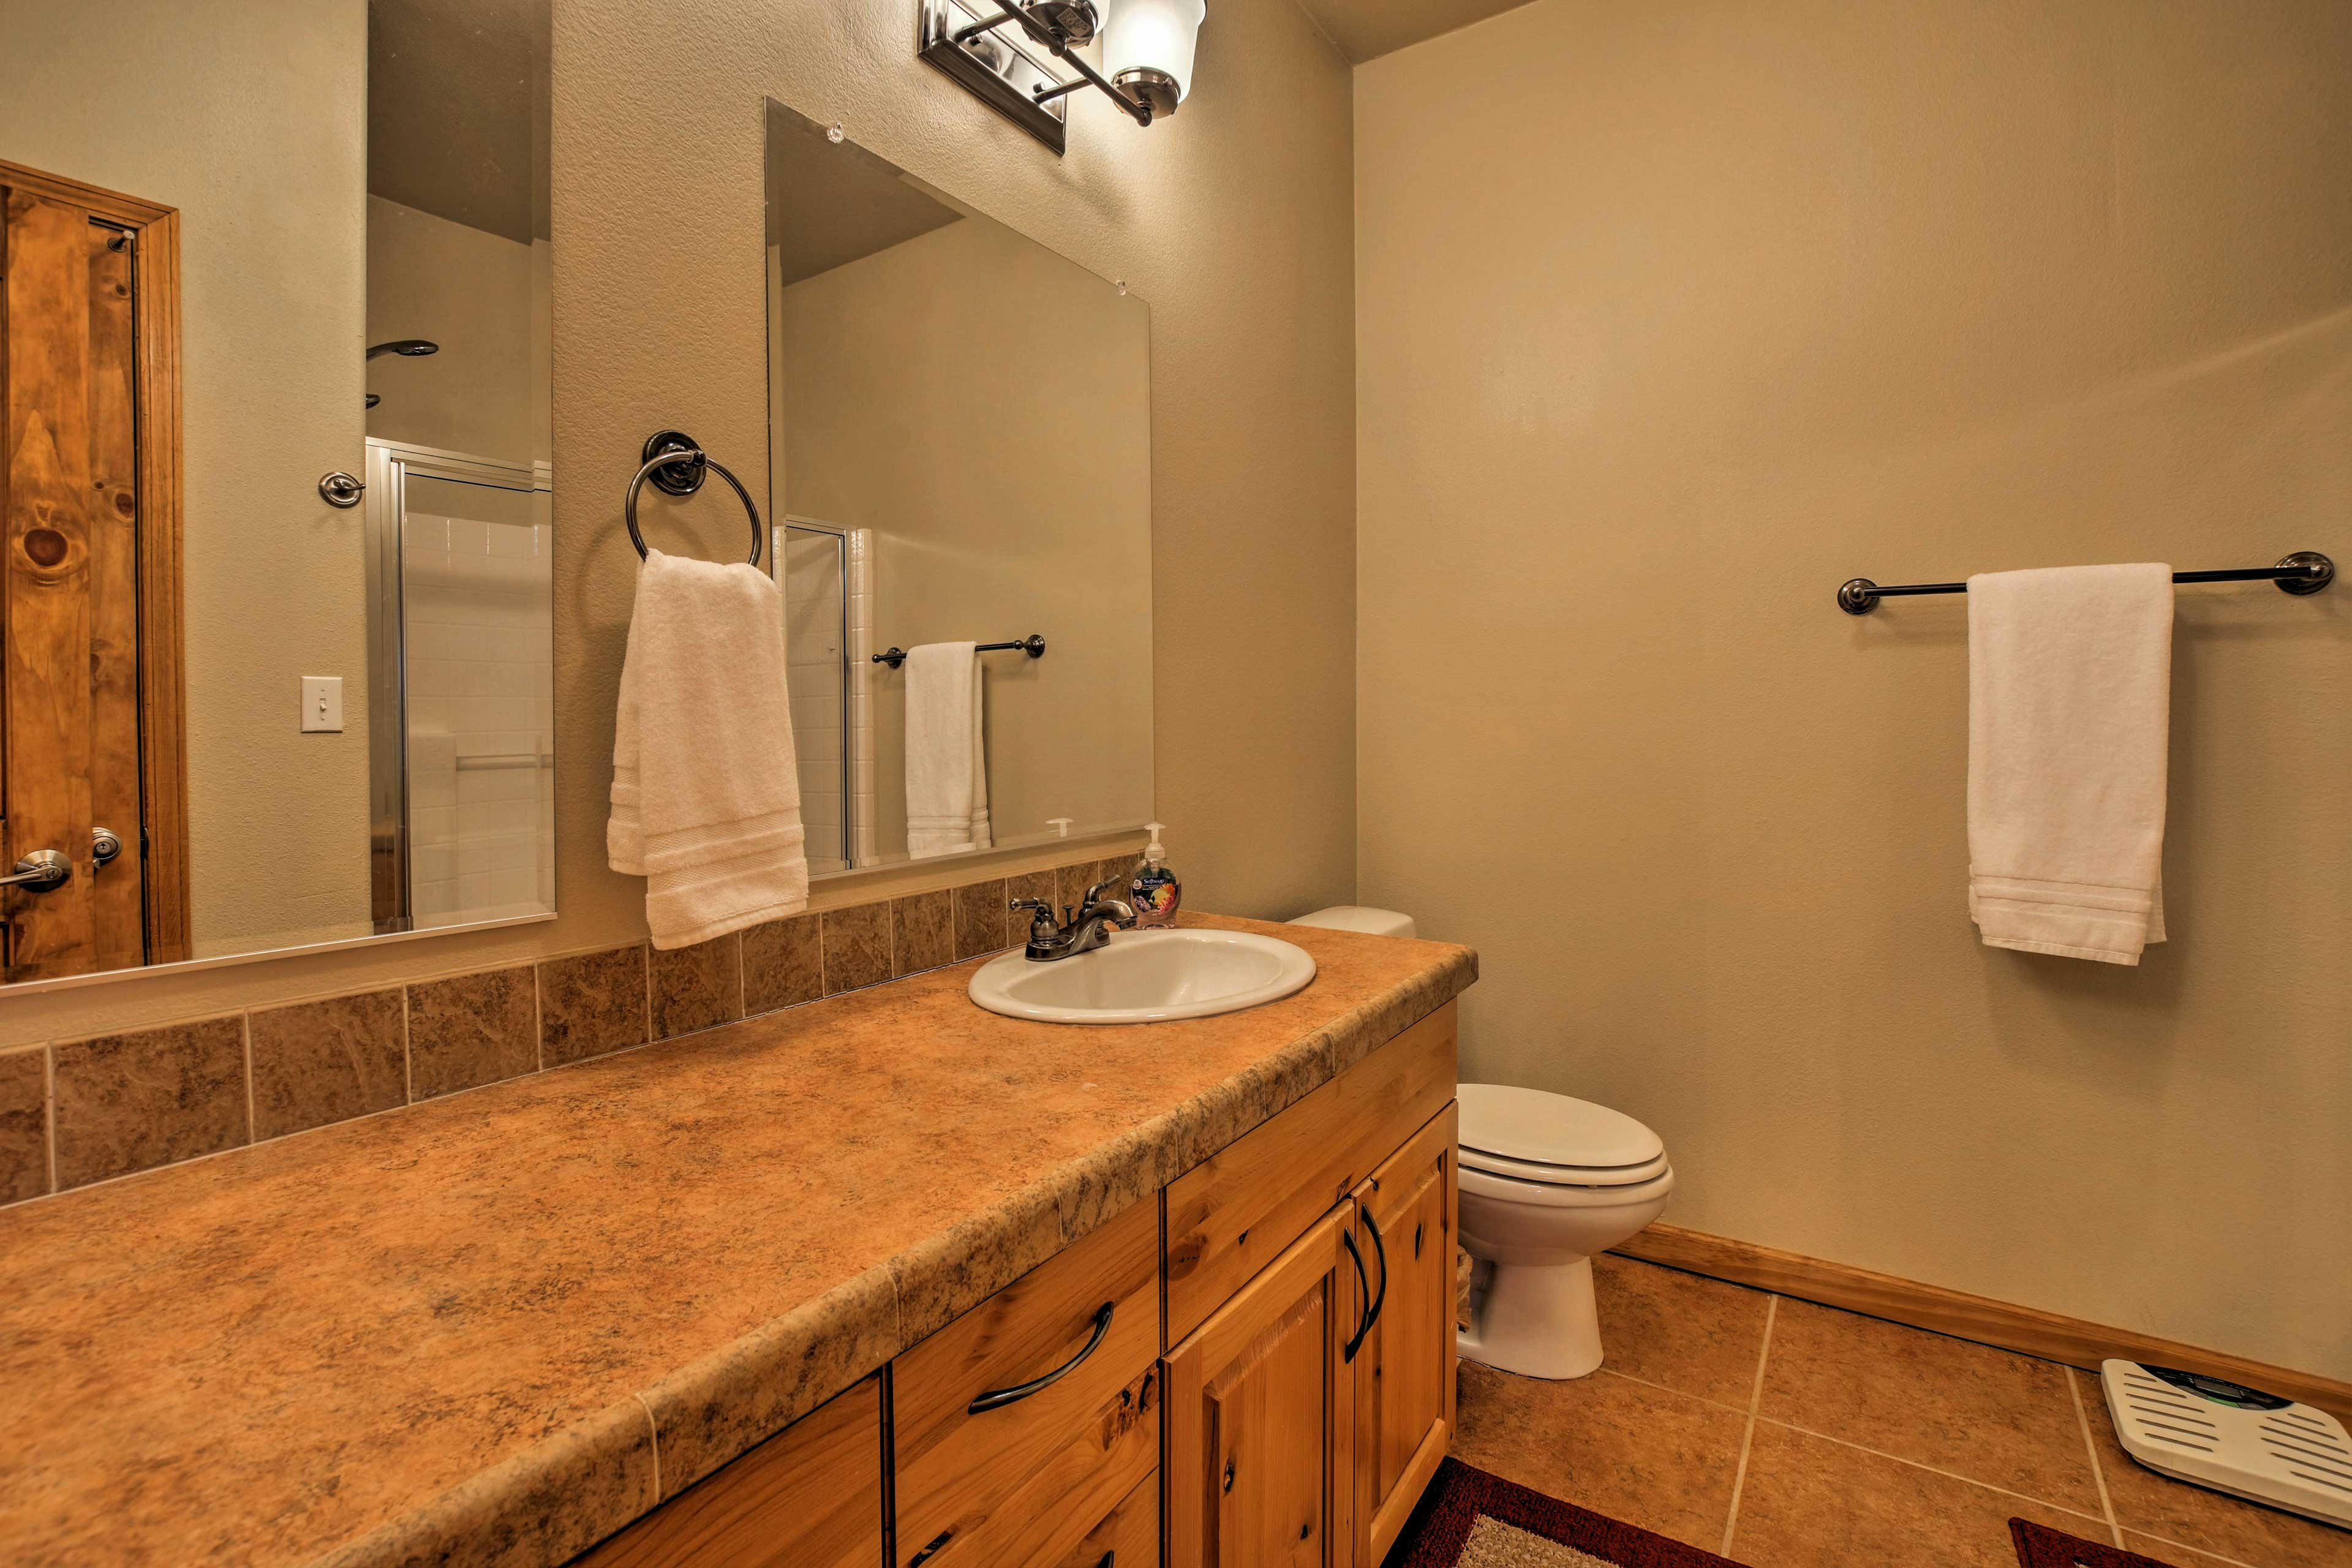 The bathroom is equipped with a walk-in shower.